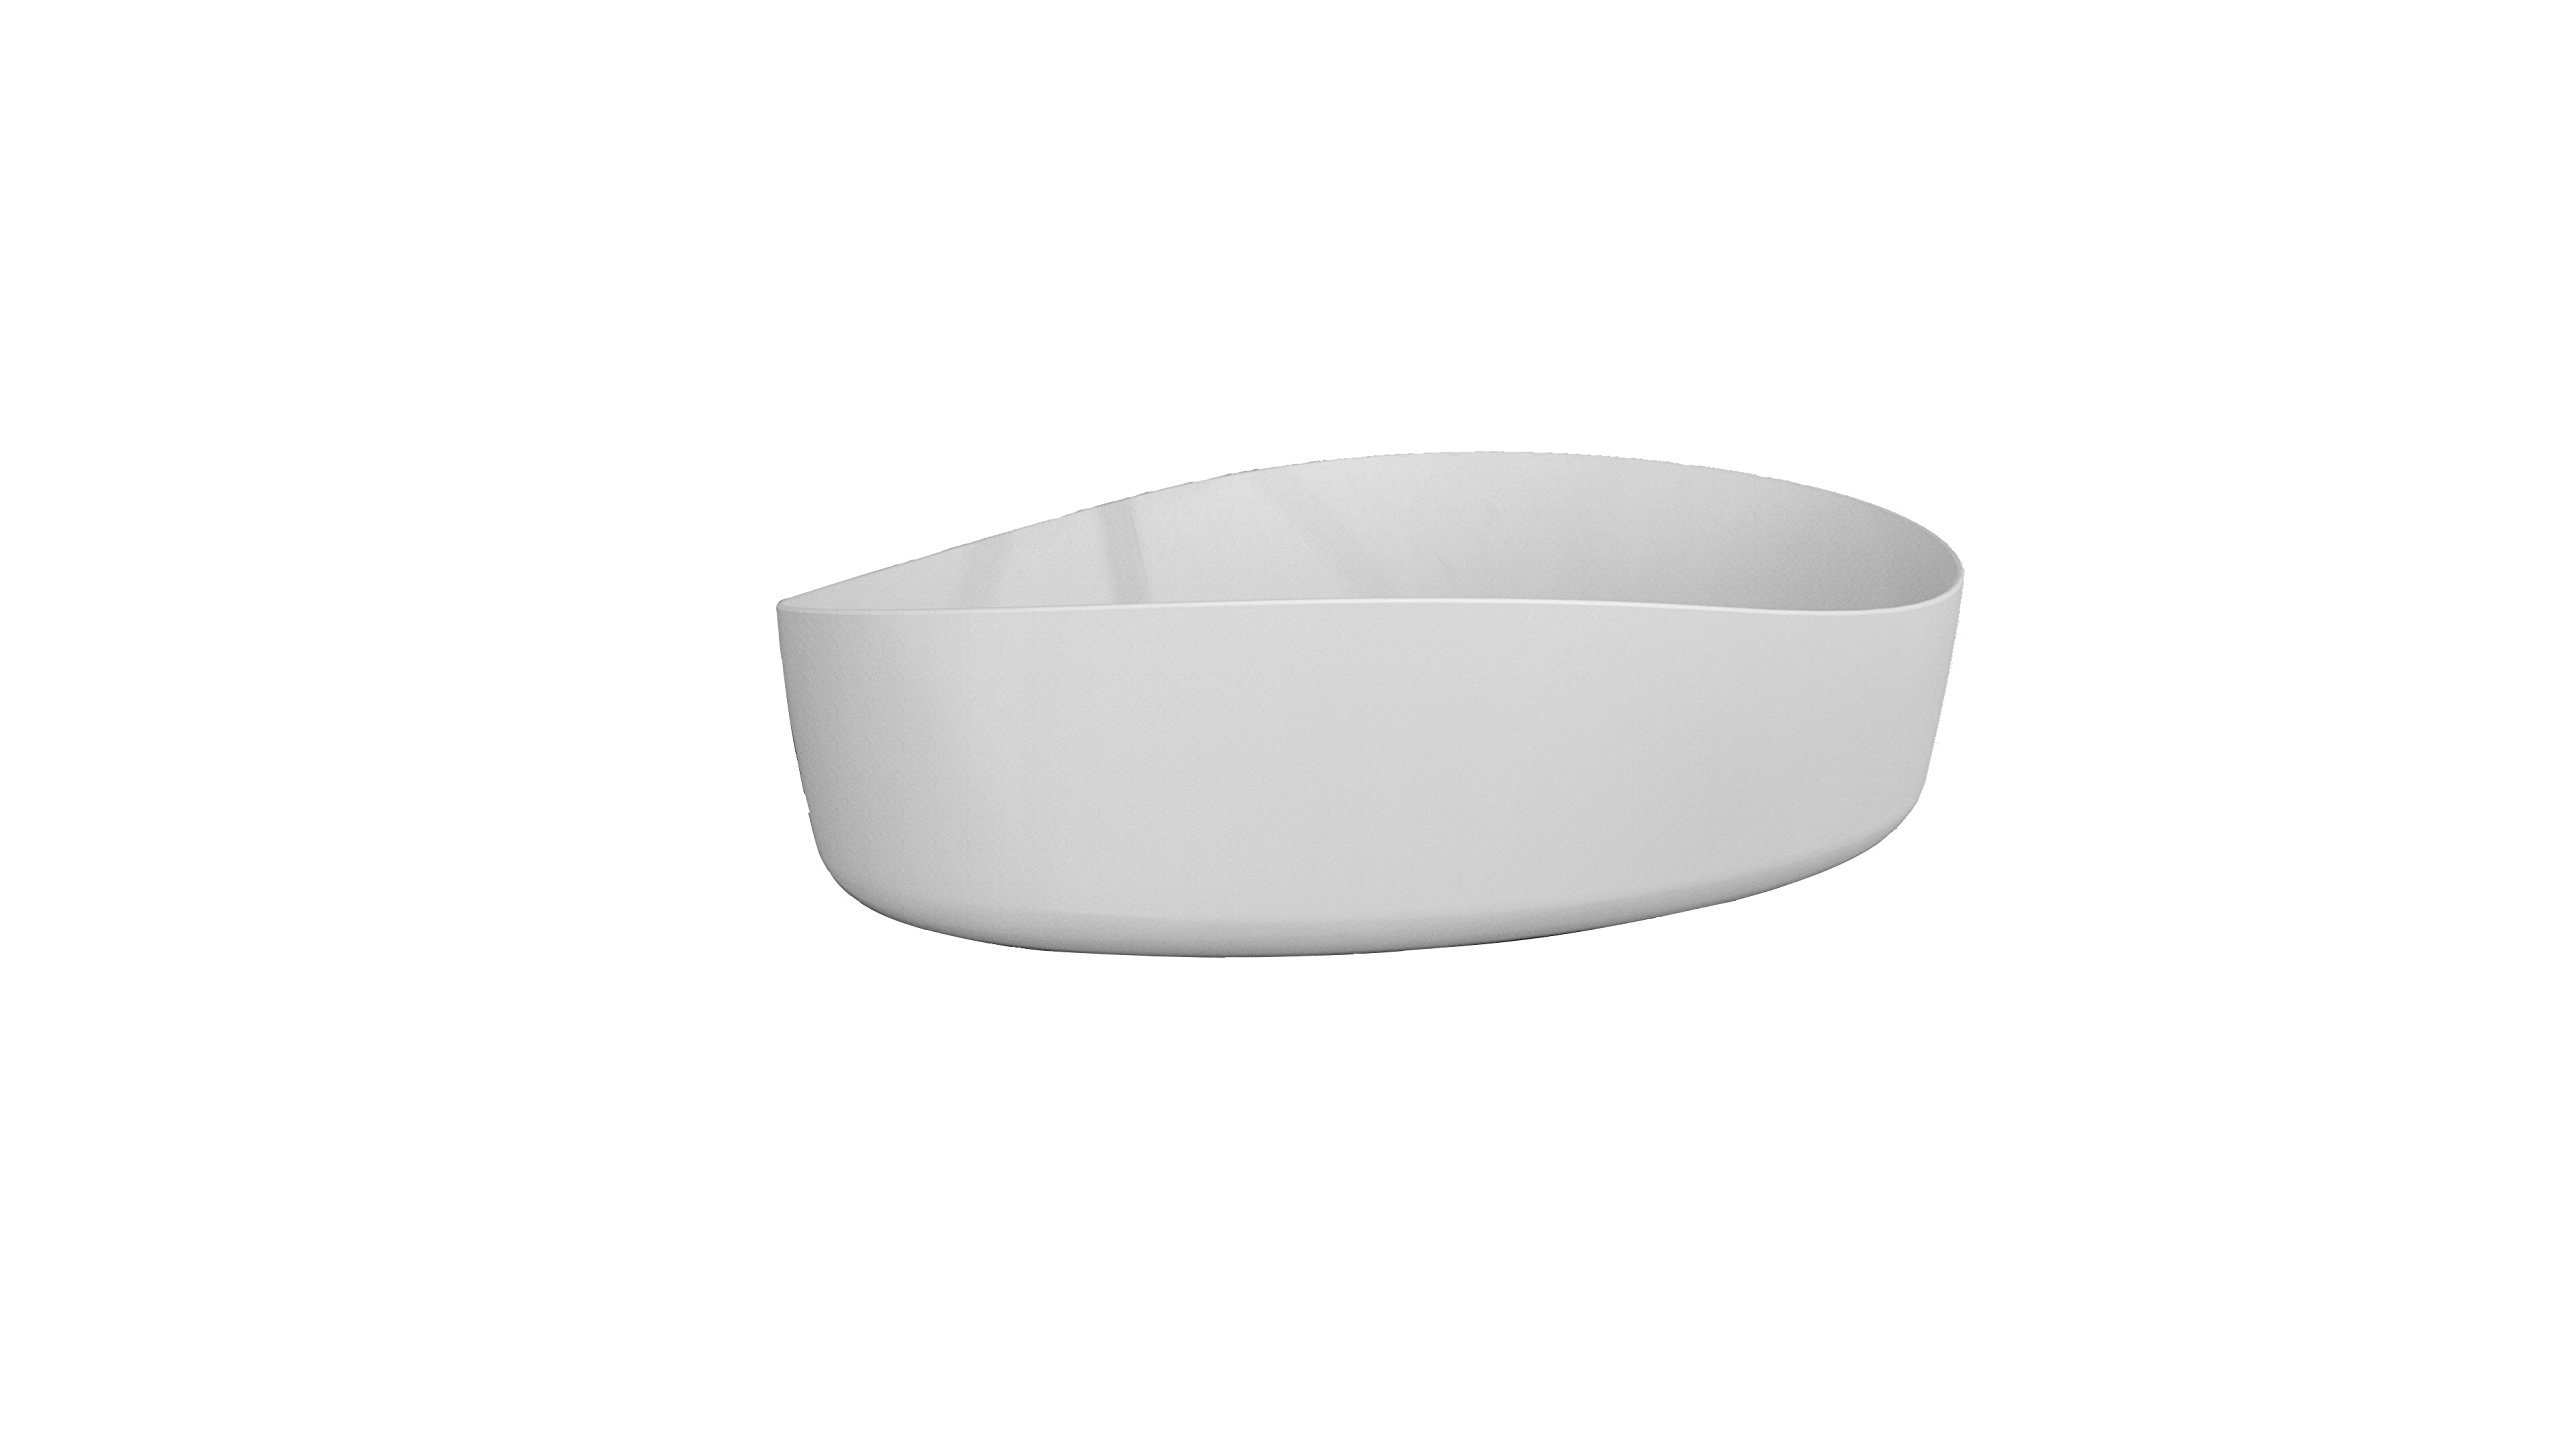 ID Harmony Solid Surface 24 in. Vessel Sink Bowl Above Counter Sink Lavatory by ID Bath Collection